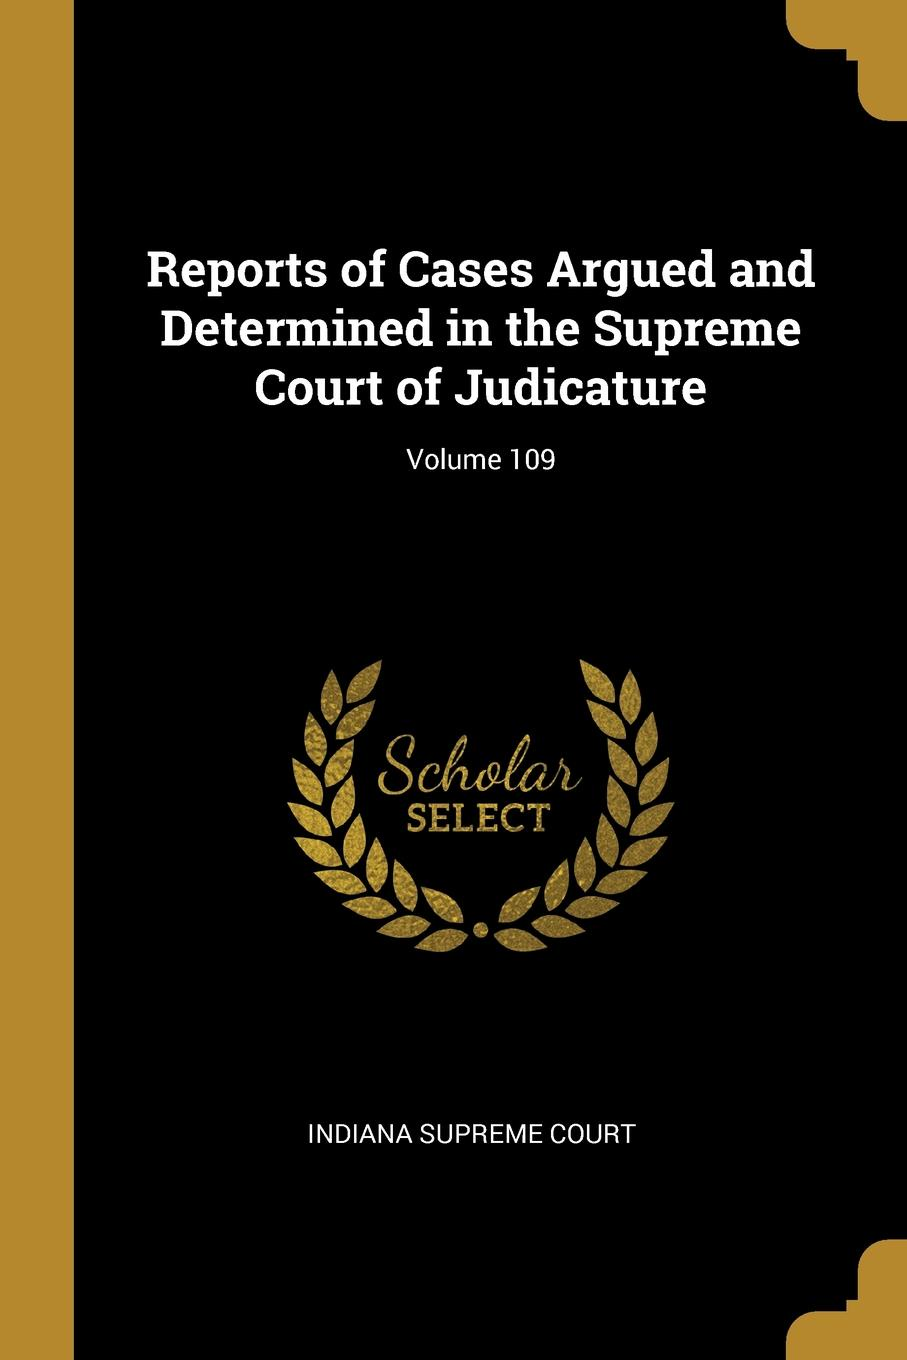 Indiana Supreme Court Reports of Cases Argued and Determined in the Supreme Court of Judicature; Volume 109